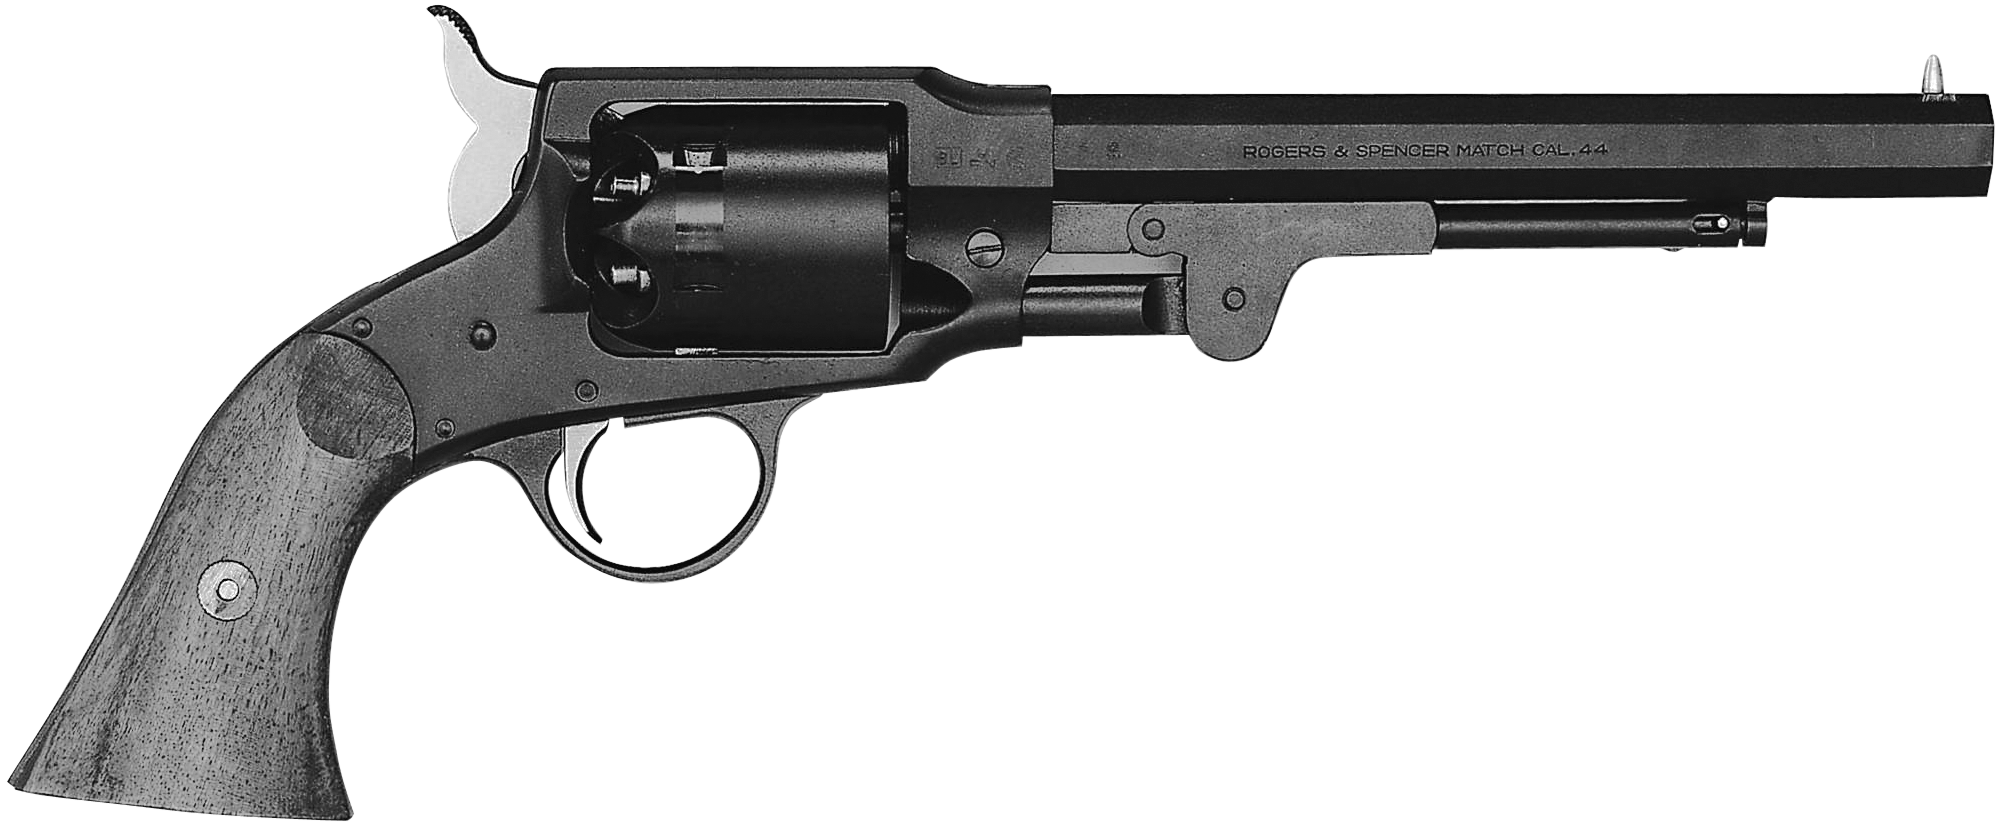 Rogers & Spencer Target Percussion Target Revolver